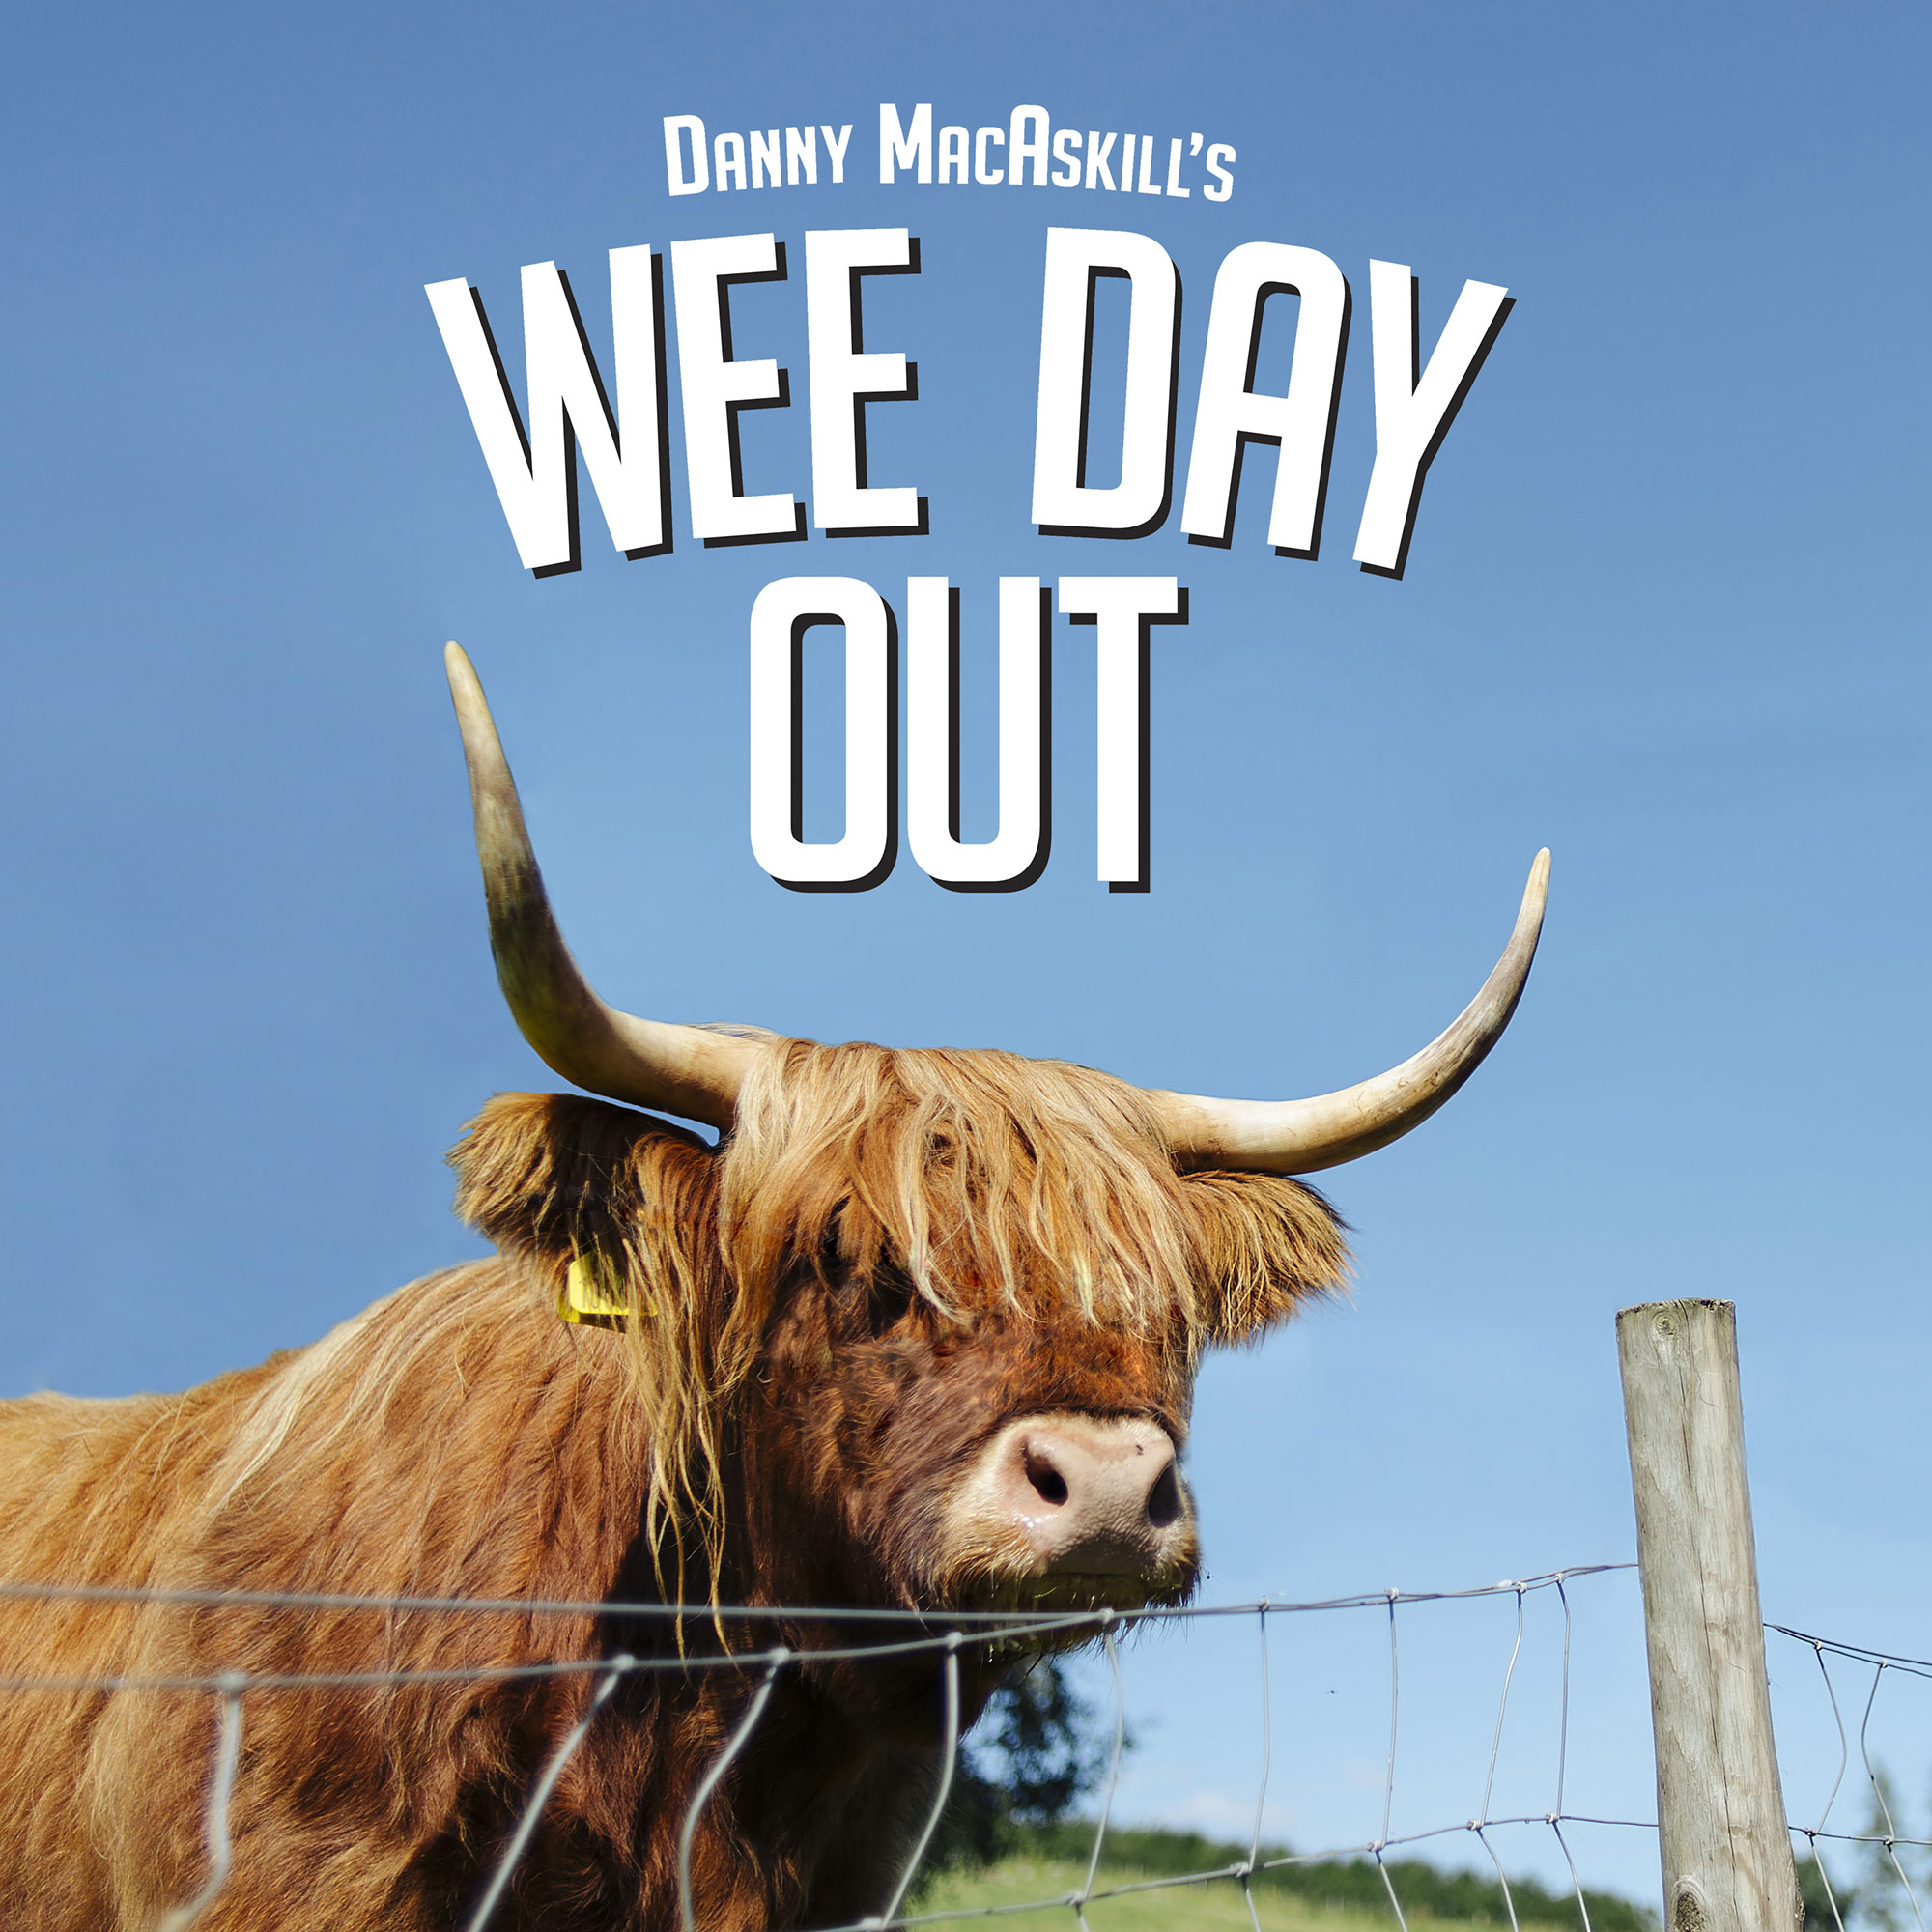 danny-wee-day-out_cow_by_red-bull-content-pool